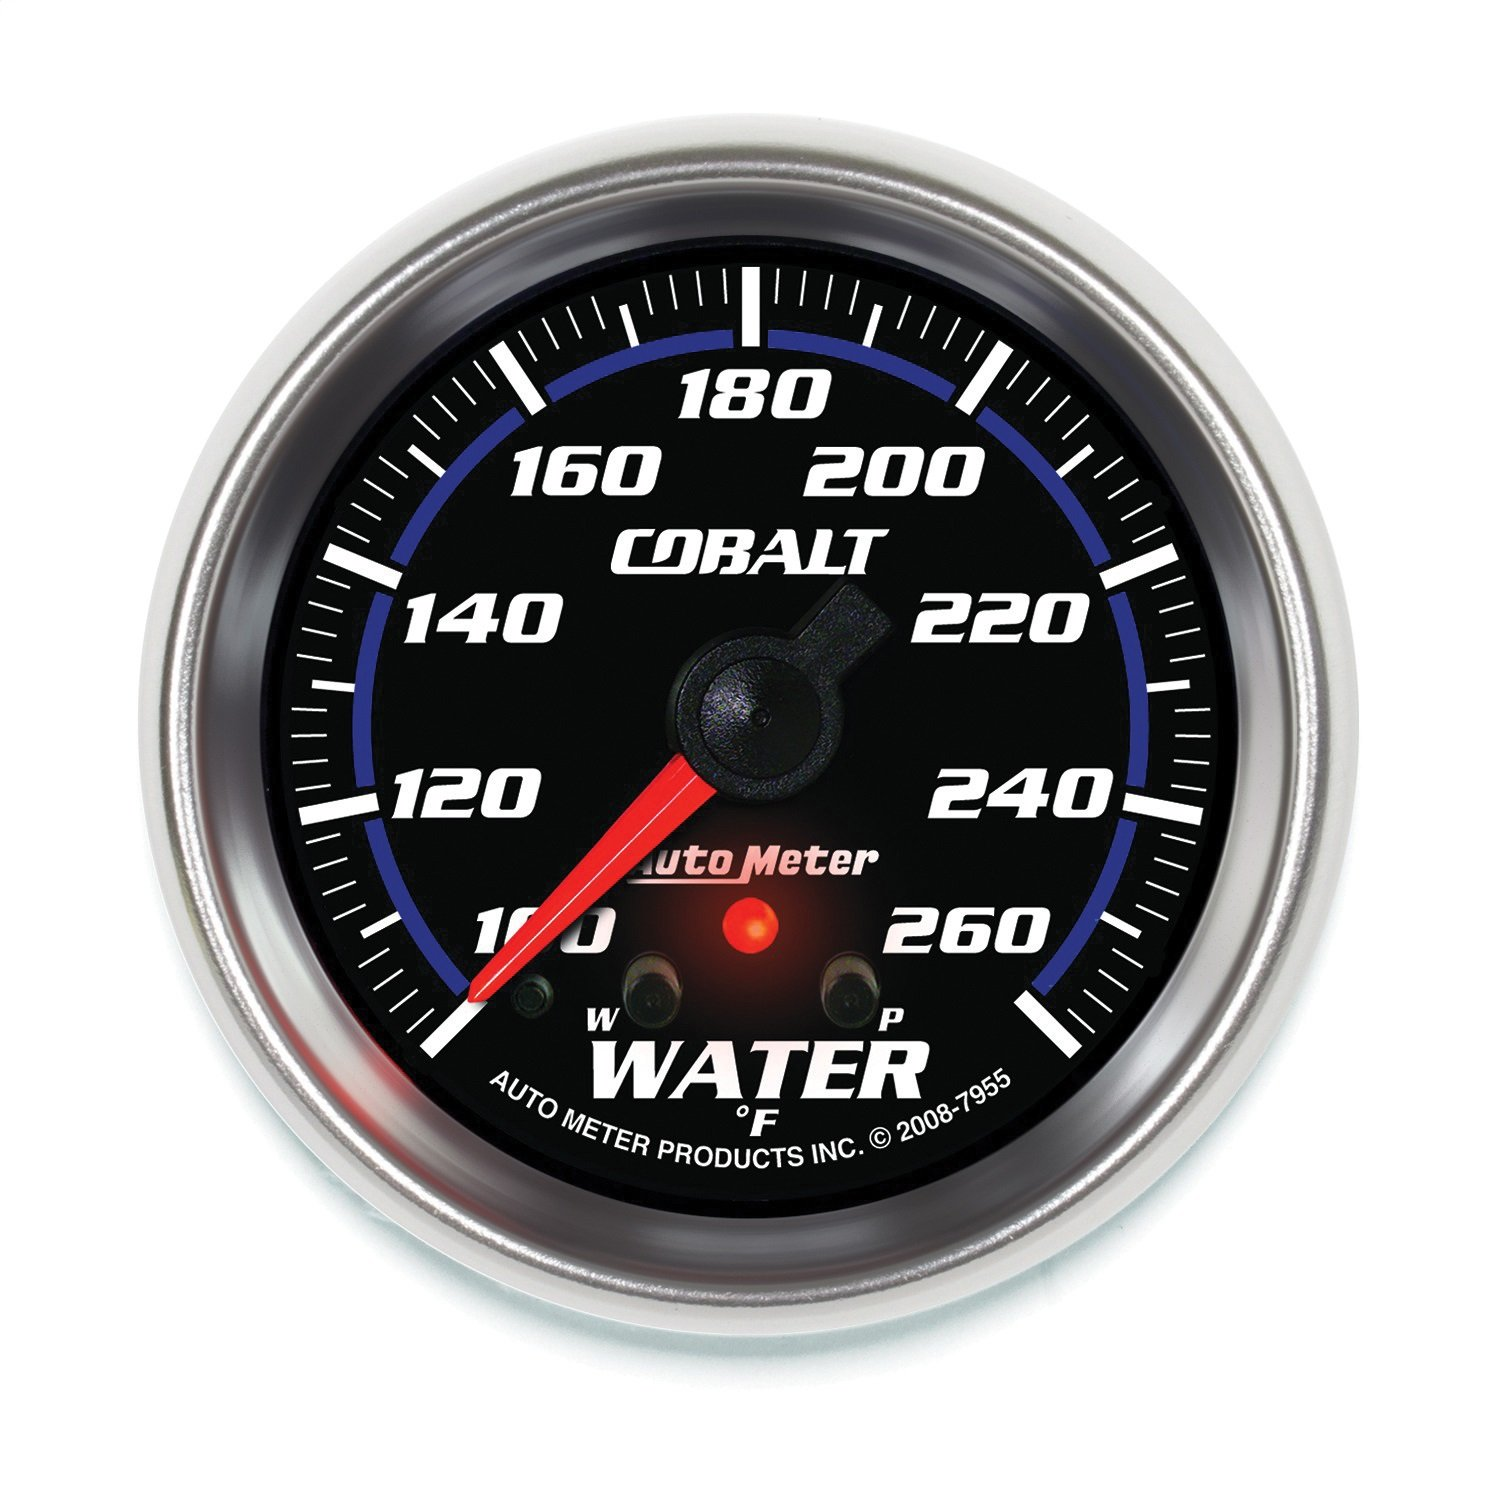 Auto Meter 7955 Cobalt 2-5/8' 100-260 Degree F Full Sweep Electric Water Temperature Gauge with Peak Memory and Warning